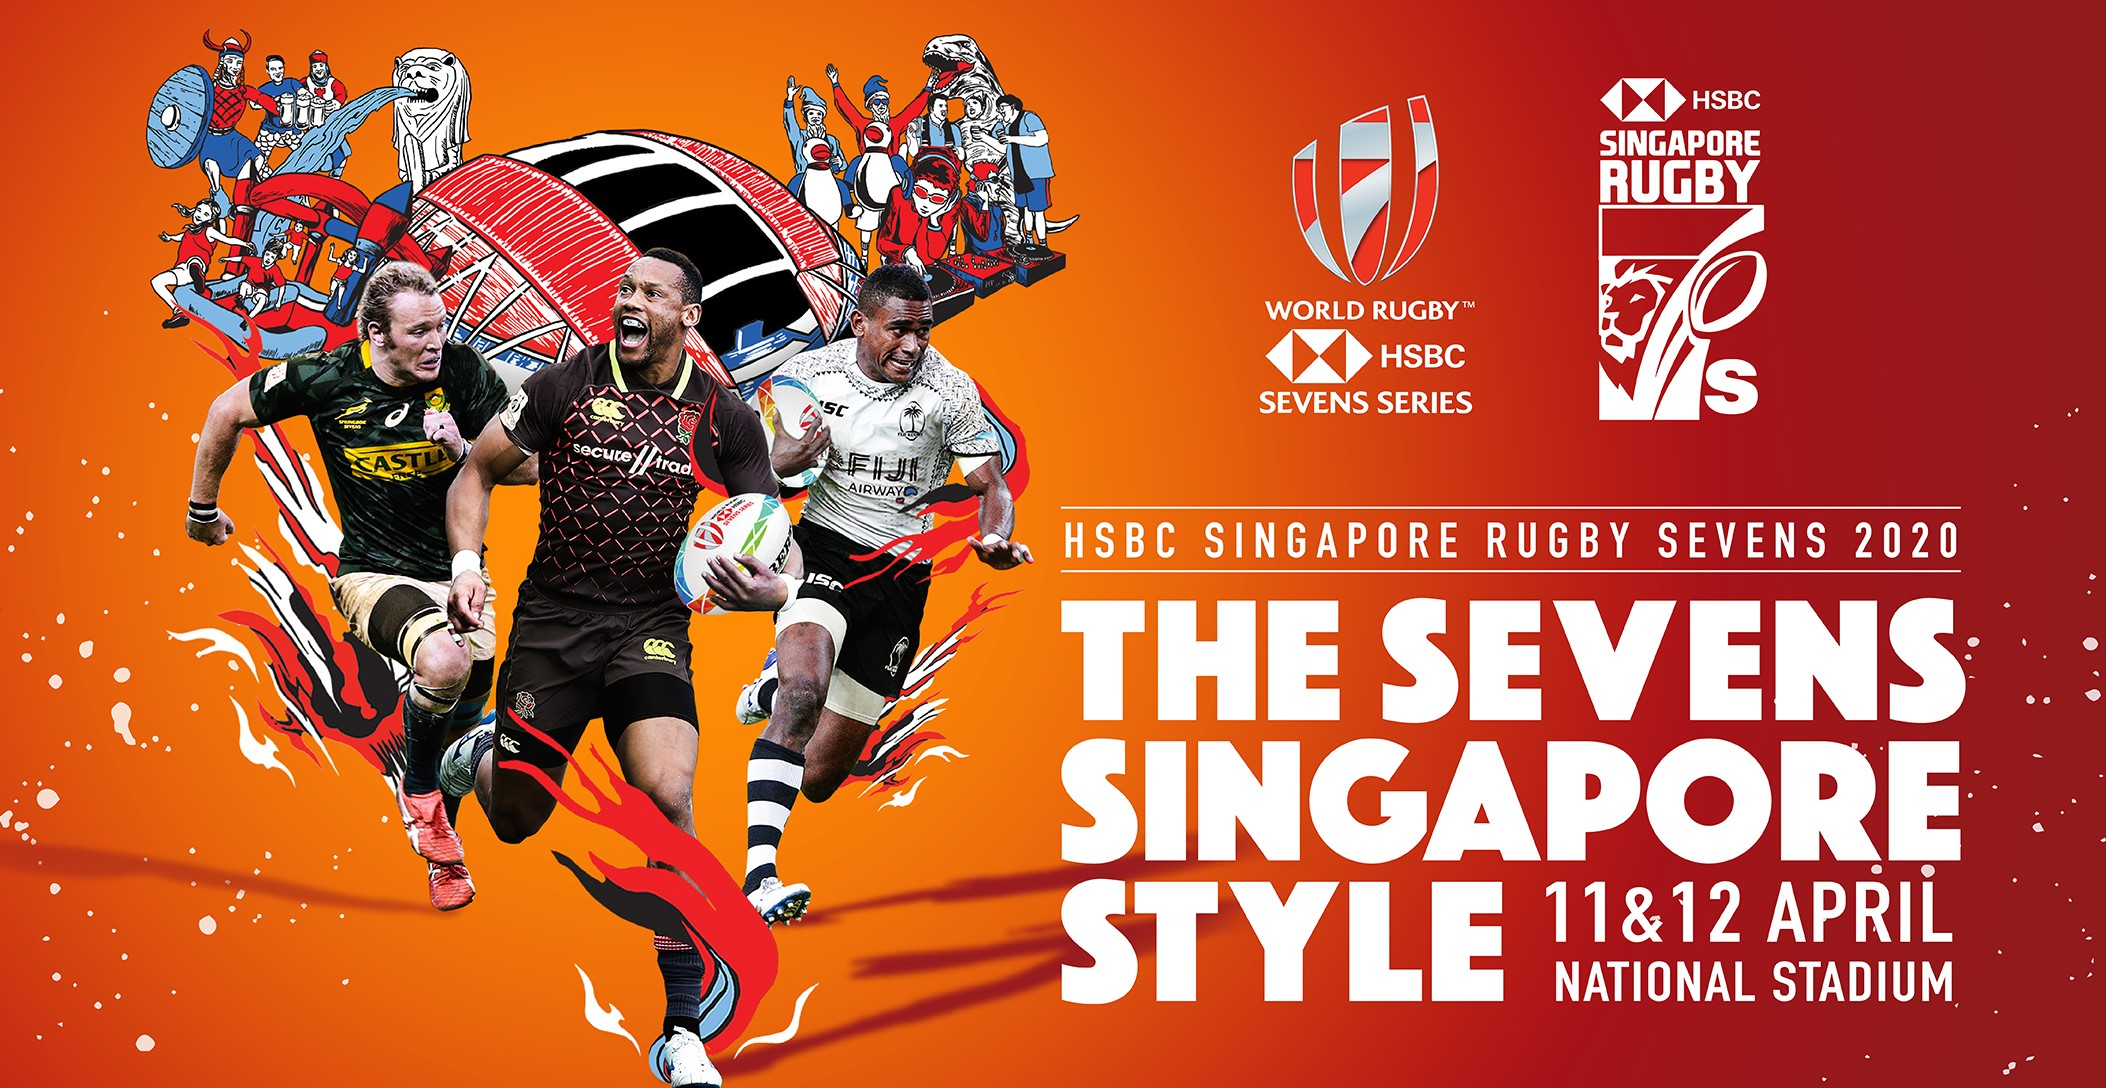 HSBC Singapore Rugby Sevens 2020